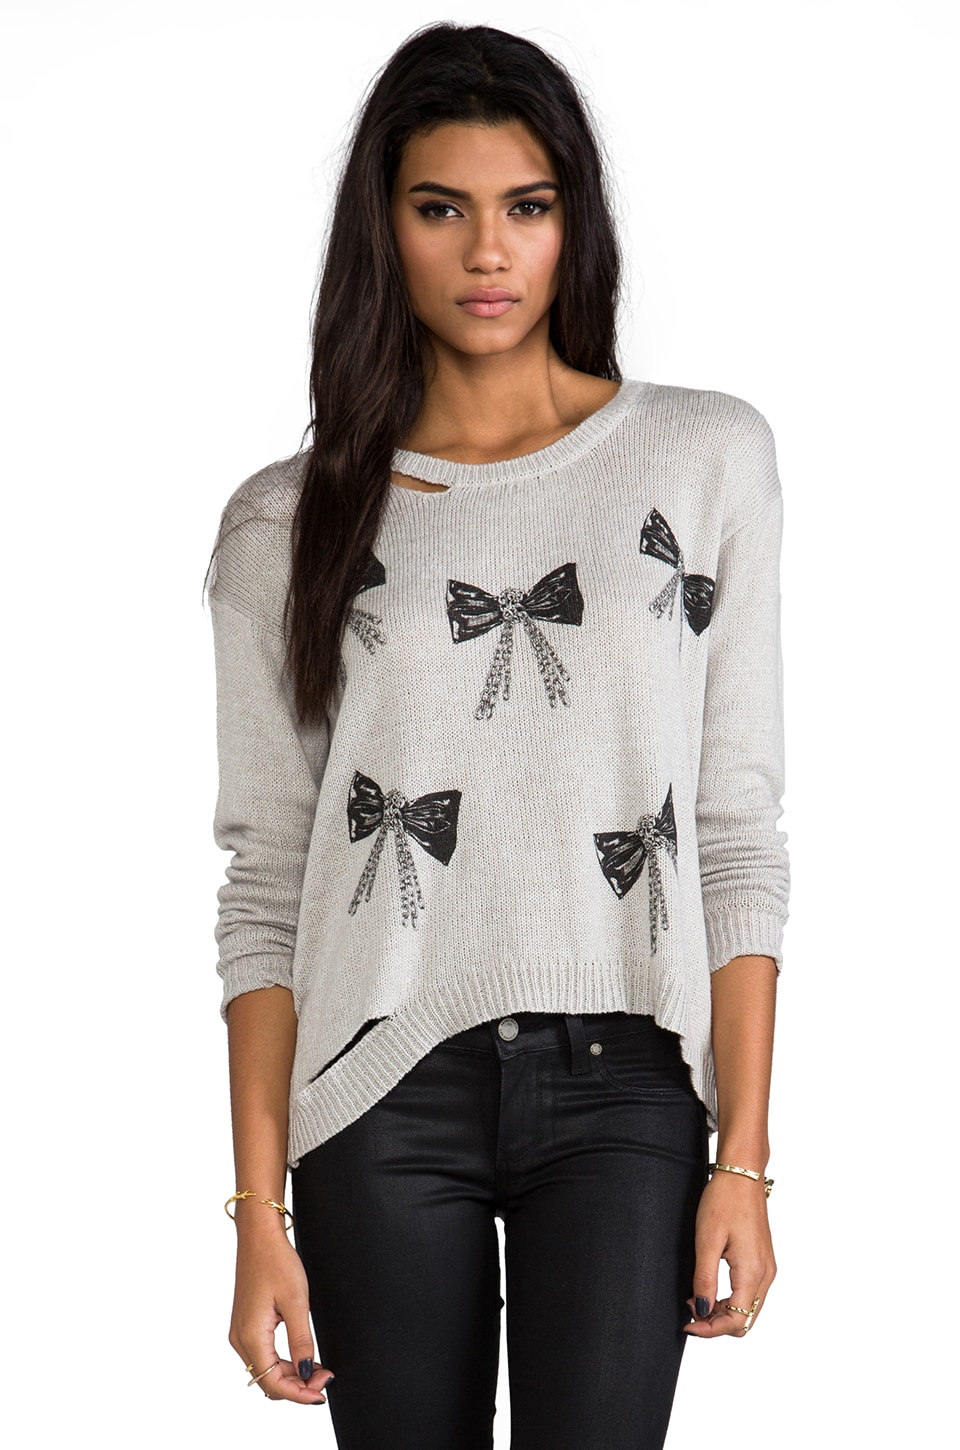 Lauren Moshi Jewel Mini Chain Bows Sweater in Grey